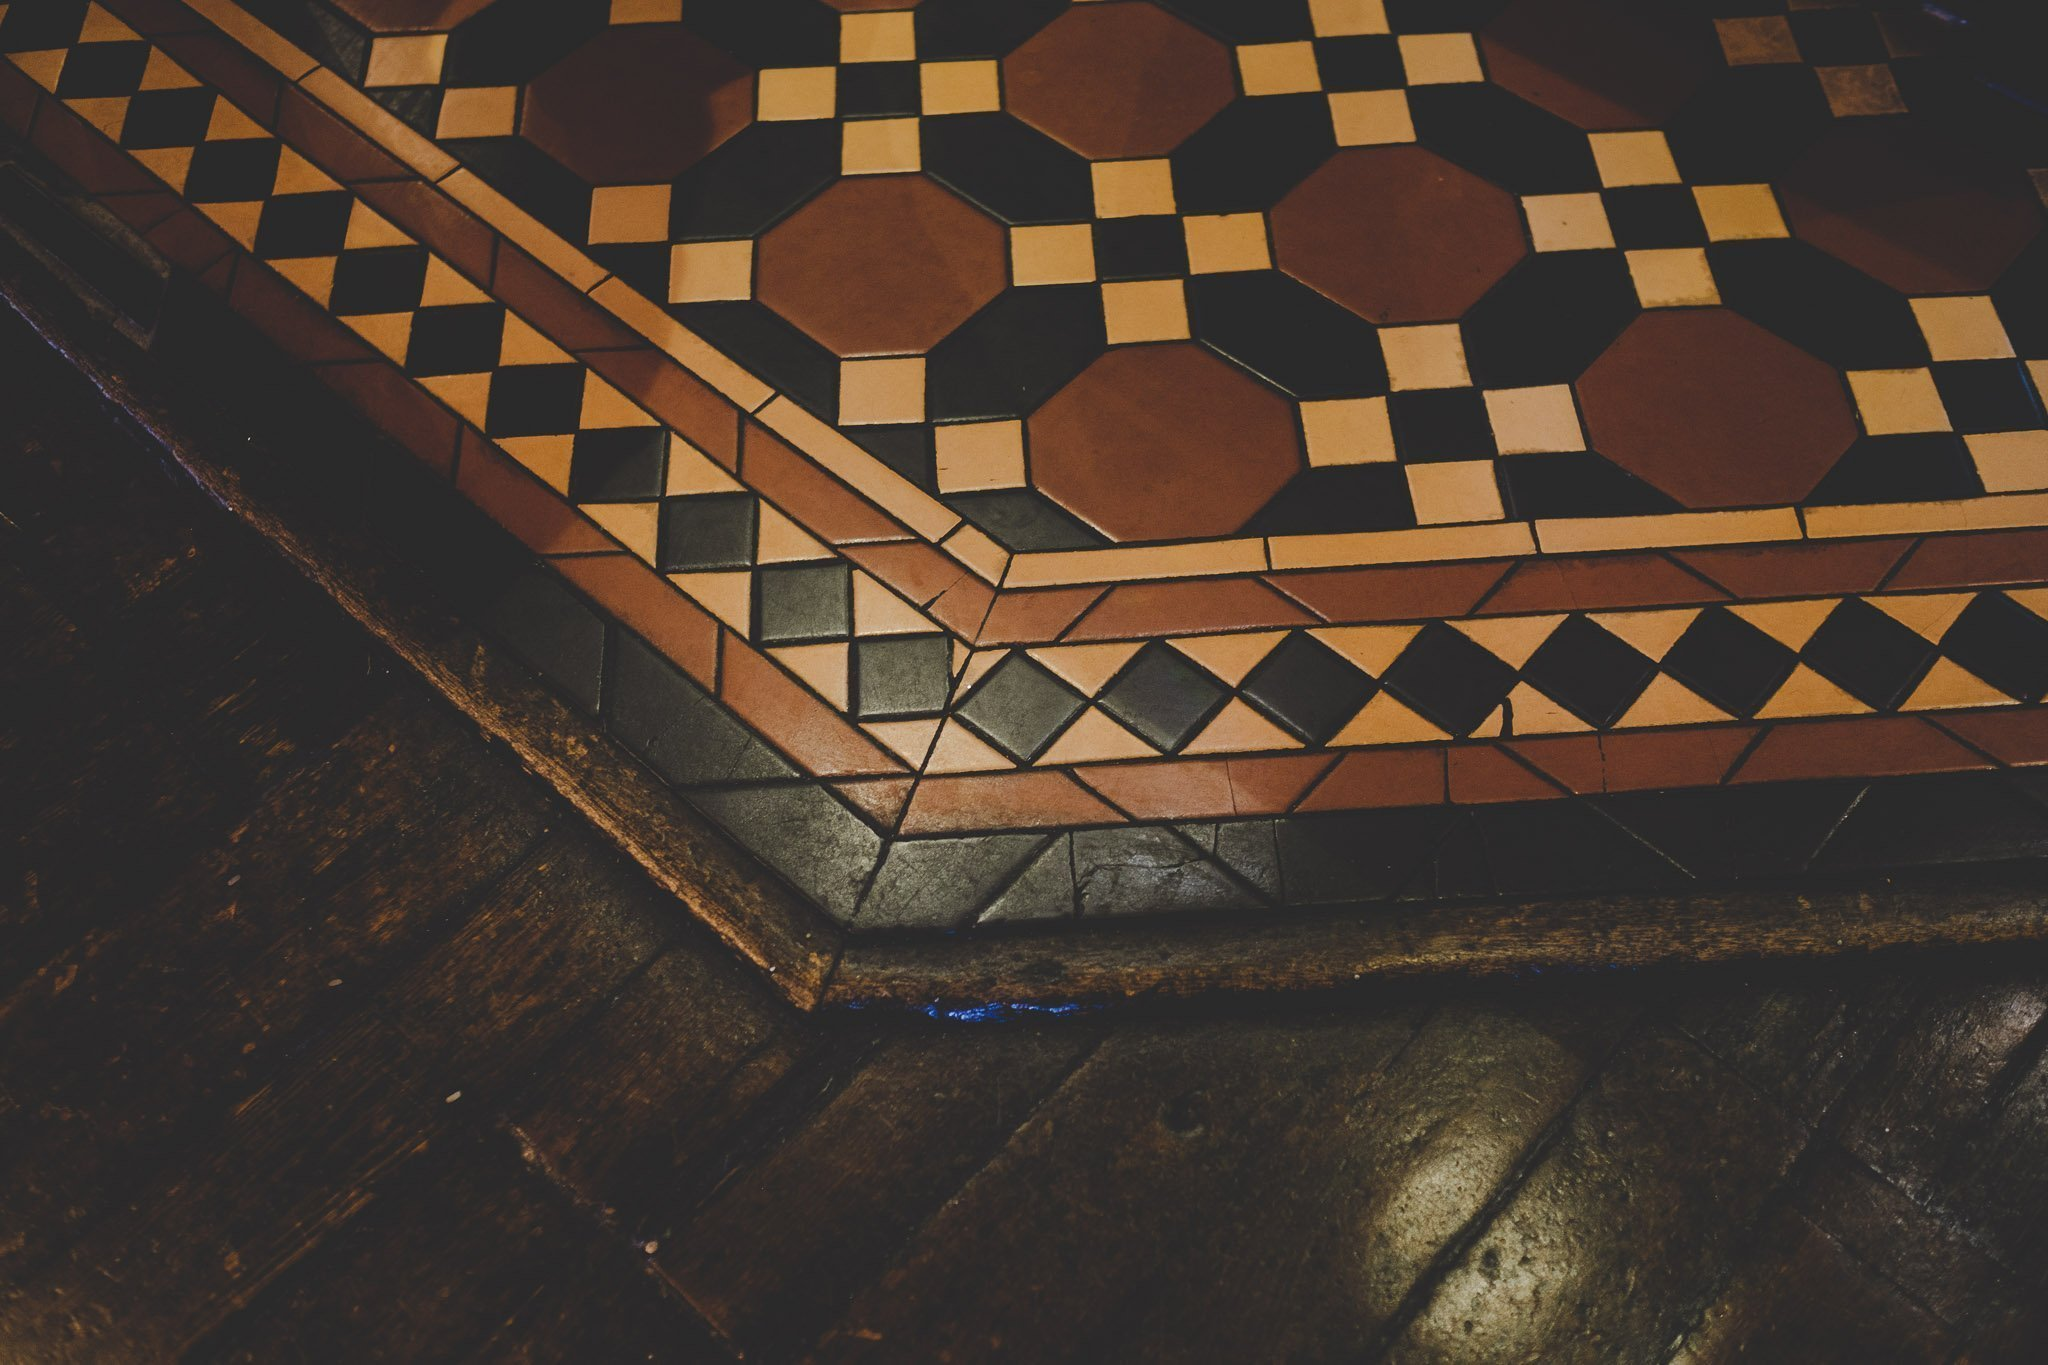 Tiled floor at The Marquis Cornwallis Pub in Bloomsbury London. Photography by thatthingyoupluck.